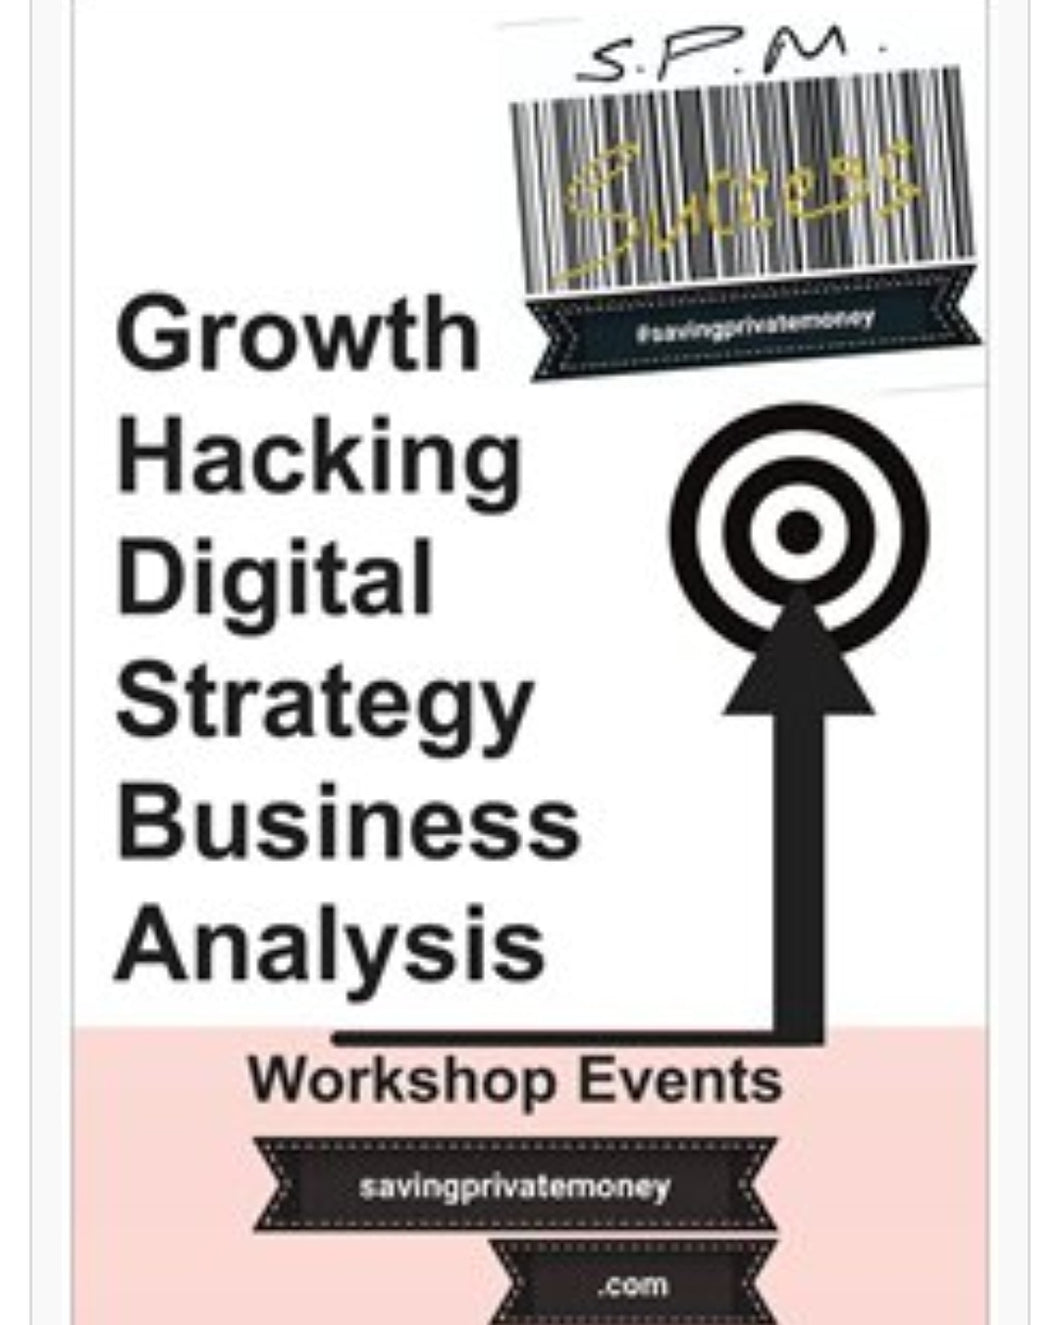 Grow your business via growth hacking, digital strategy & business analysis ebook download.